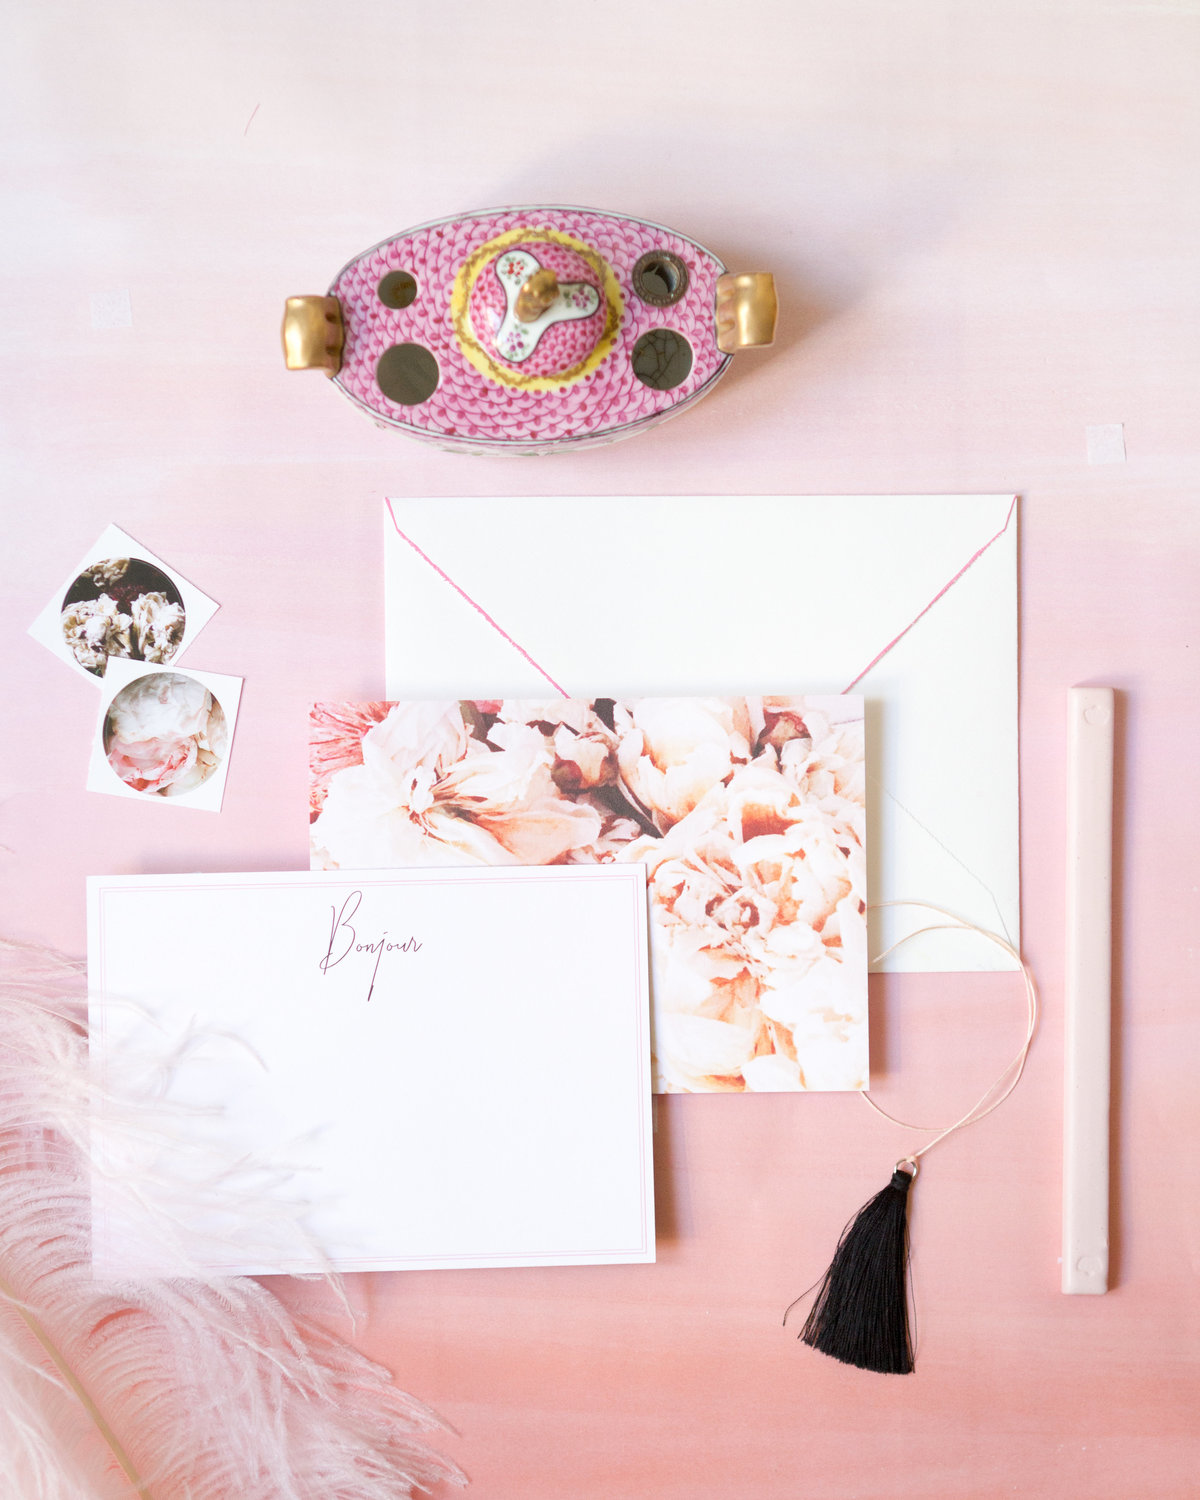 Peonie Bonjour Stationery (1 of 1)